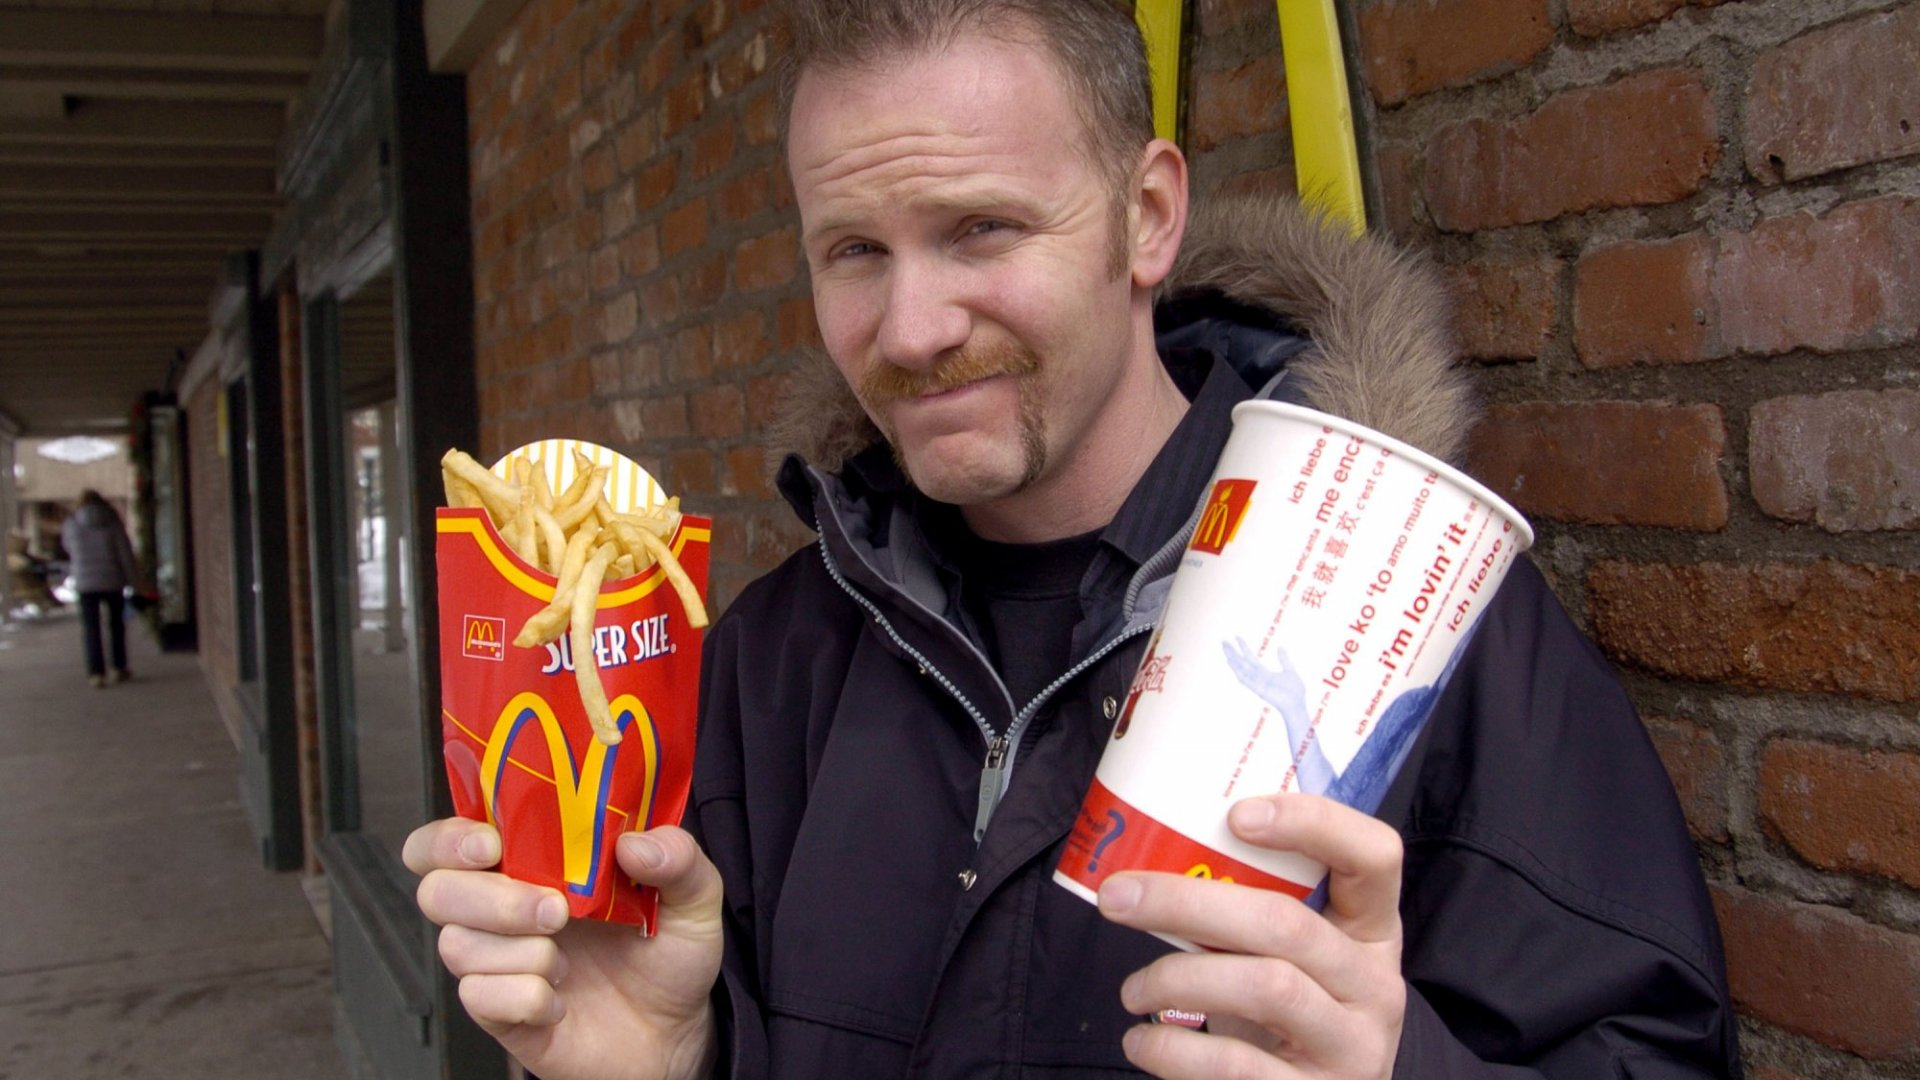 Super Size Me Joins the Ranks of Media Promotions That Open Real Restaurants